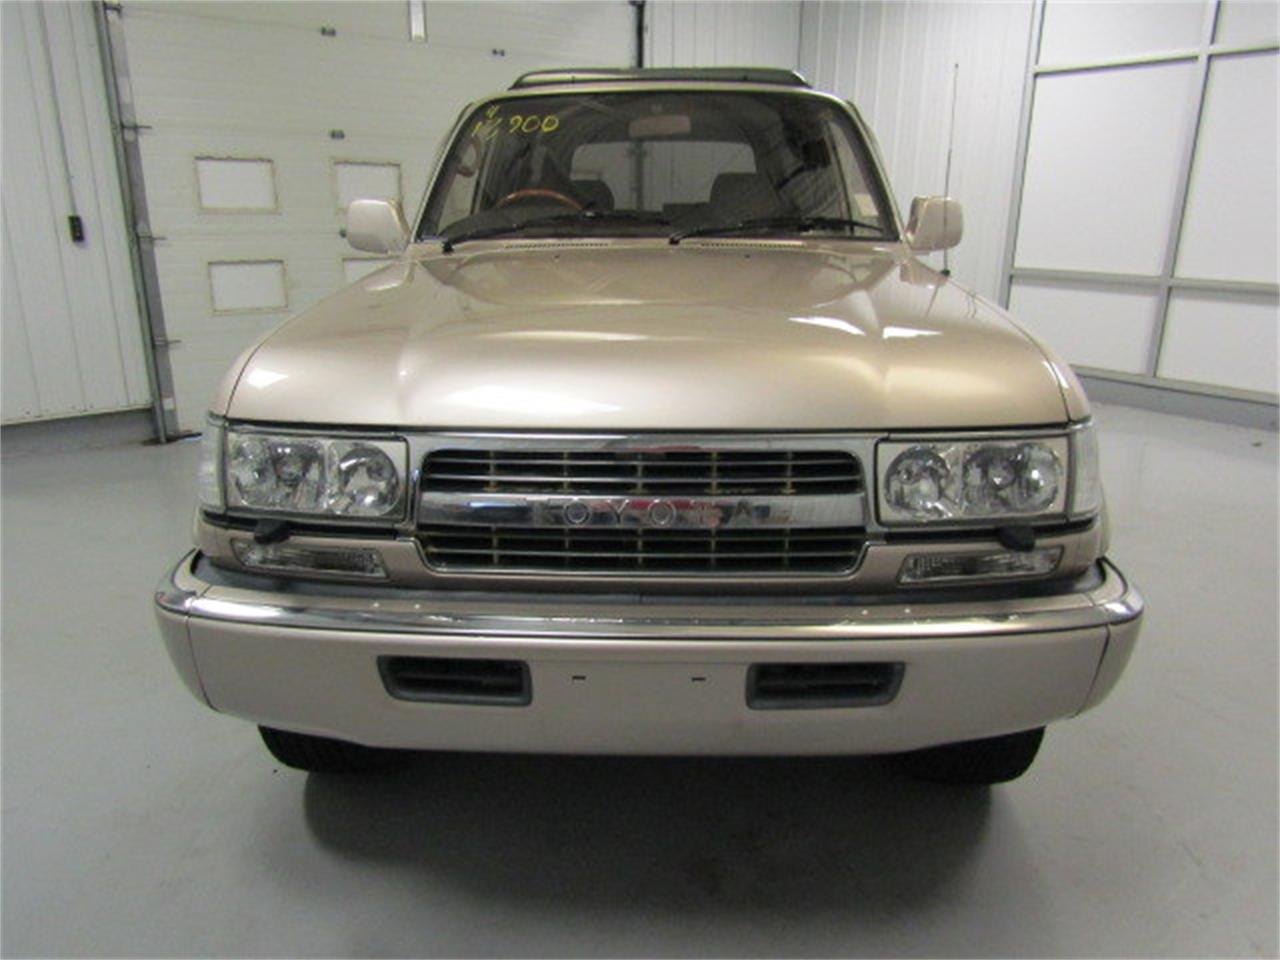 Large Picture of 1991 Land Cruiser FJ - $11,994.00 Offered by Duncan Imports & Classic Cars - LI66